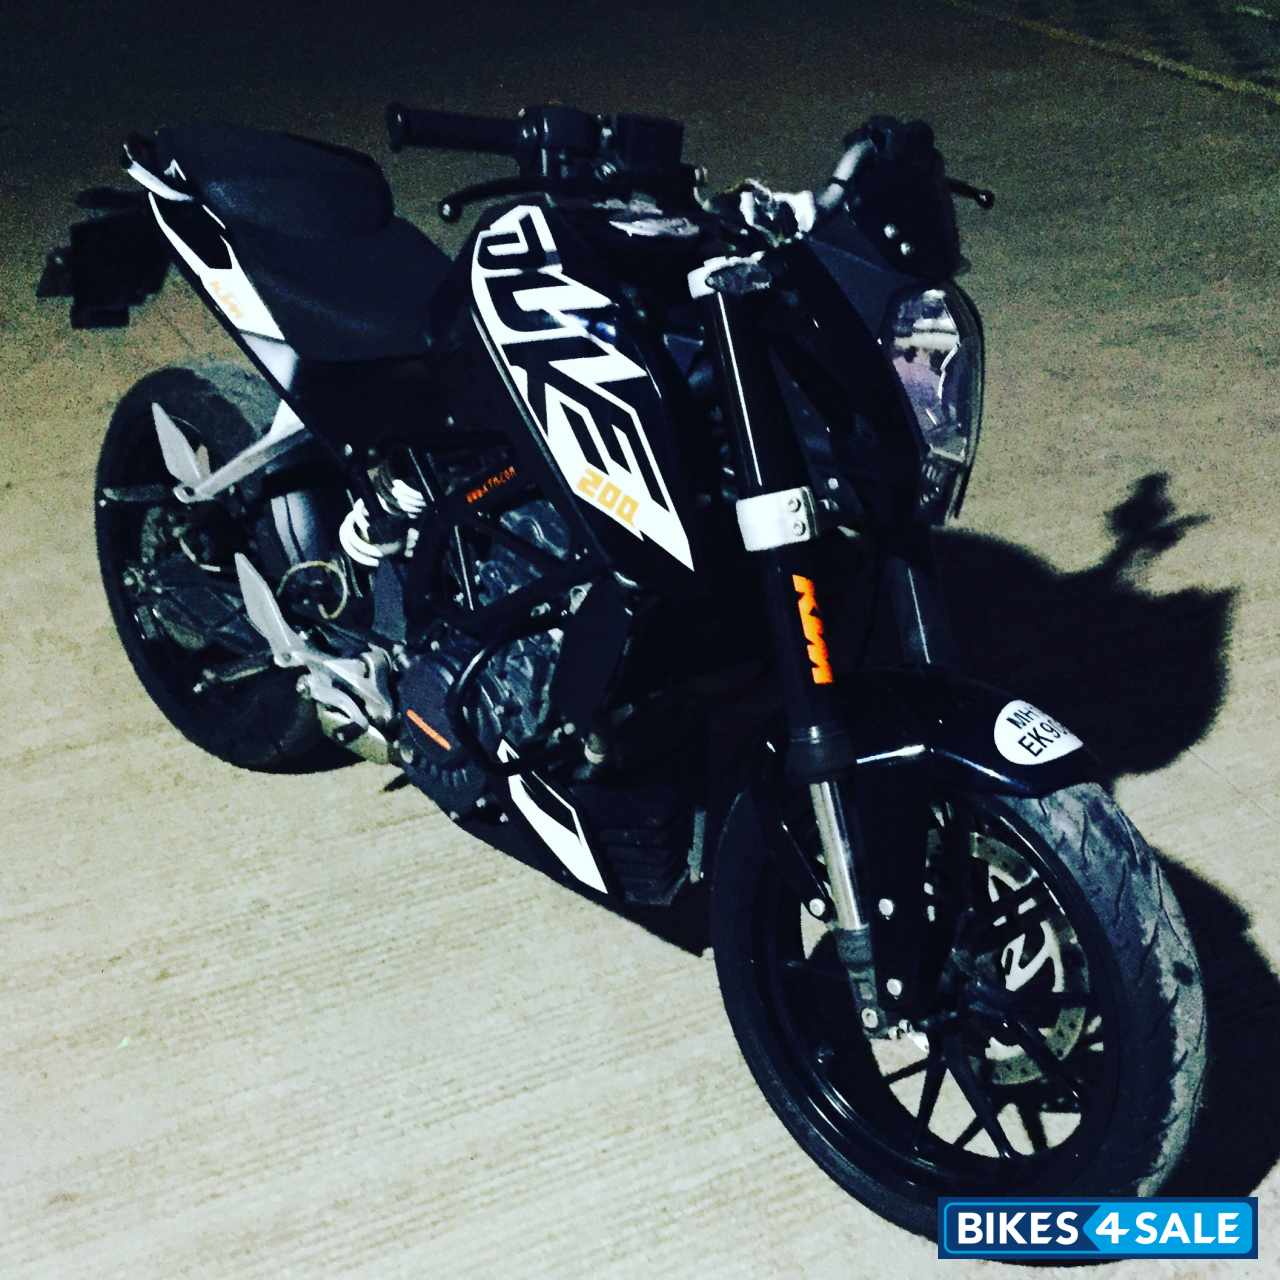 Ktm Duke 200 In Black Duke 200 Price In Pune 1564273 Hd Wallpaper Backgrounds Download